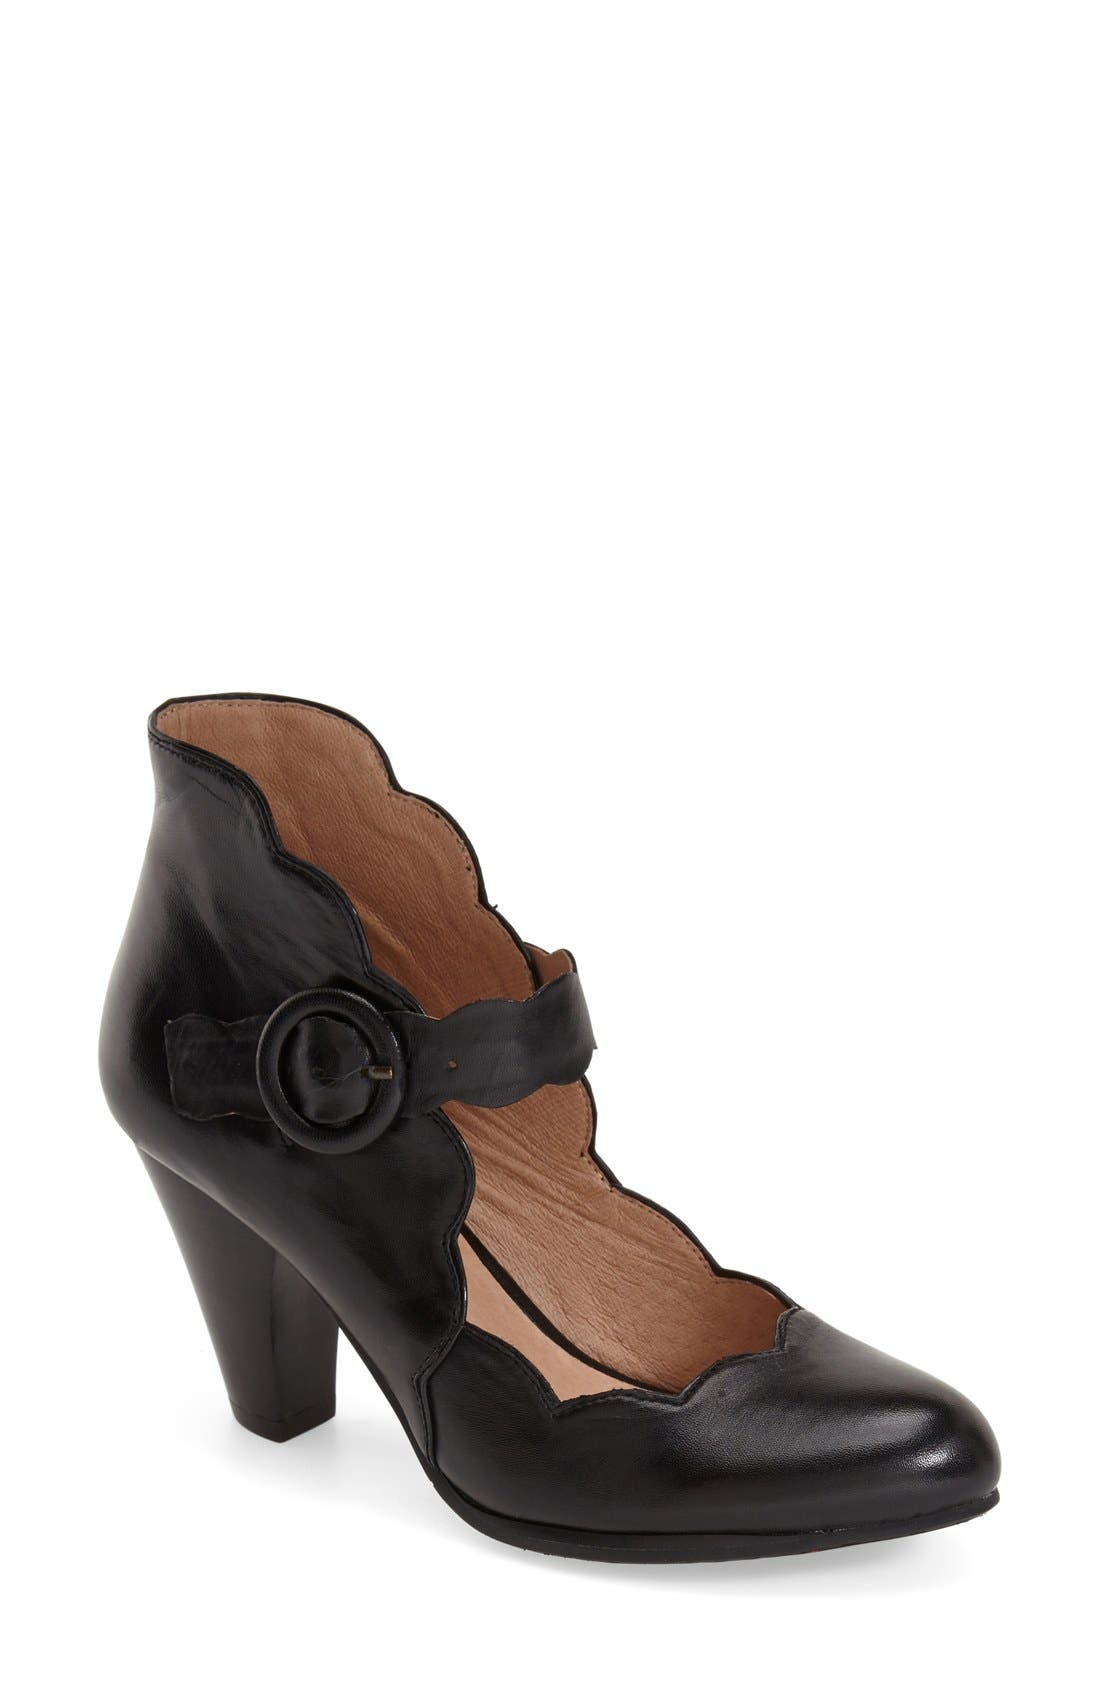 Miz Mooz Footwear 'Carissa' Mary Jane Pump (Women)